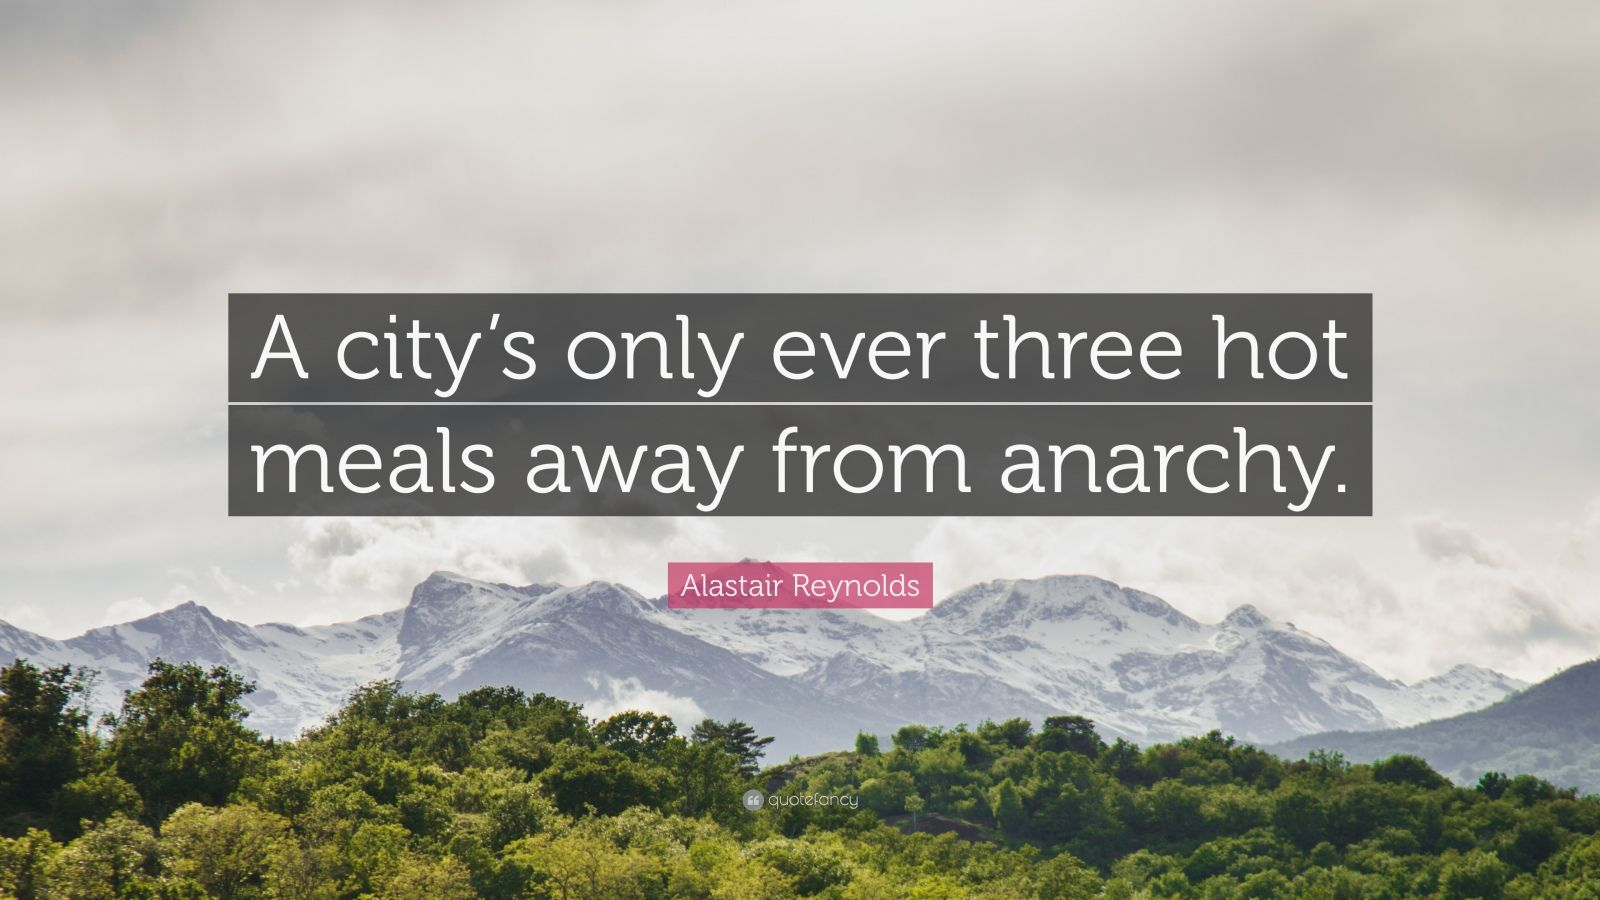 """Alastair Reynolds Quote: """"A city's only ever three hot meals away from anarchy."""""""